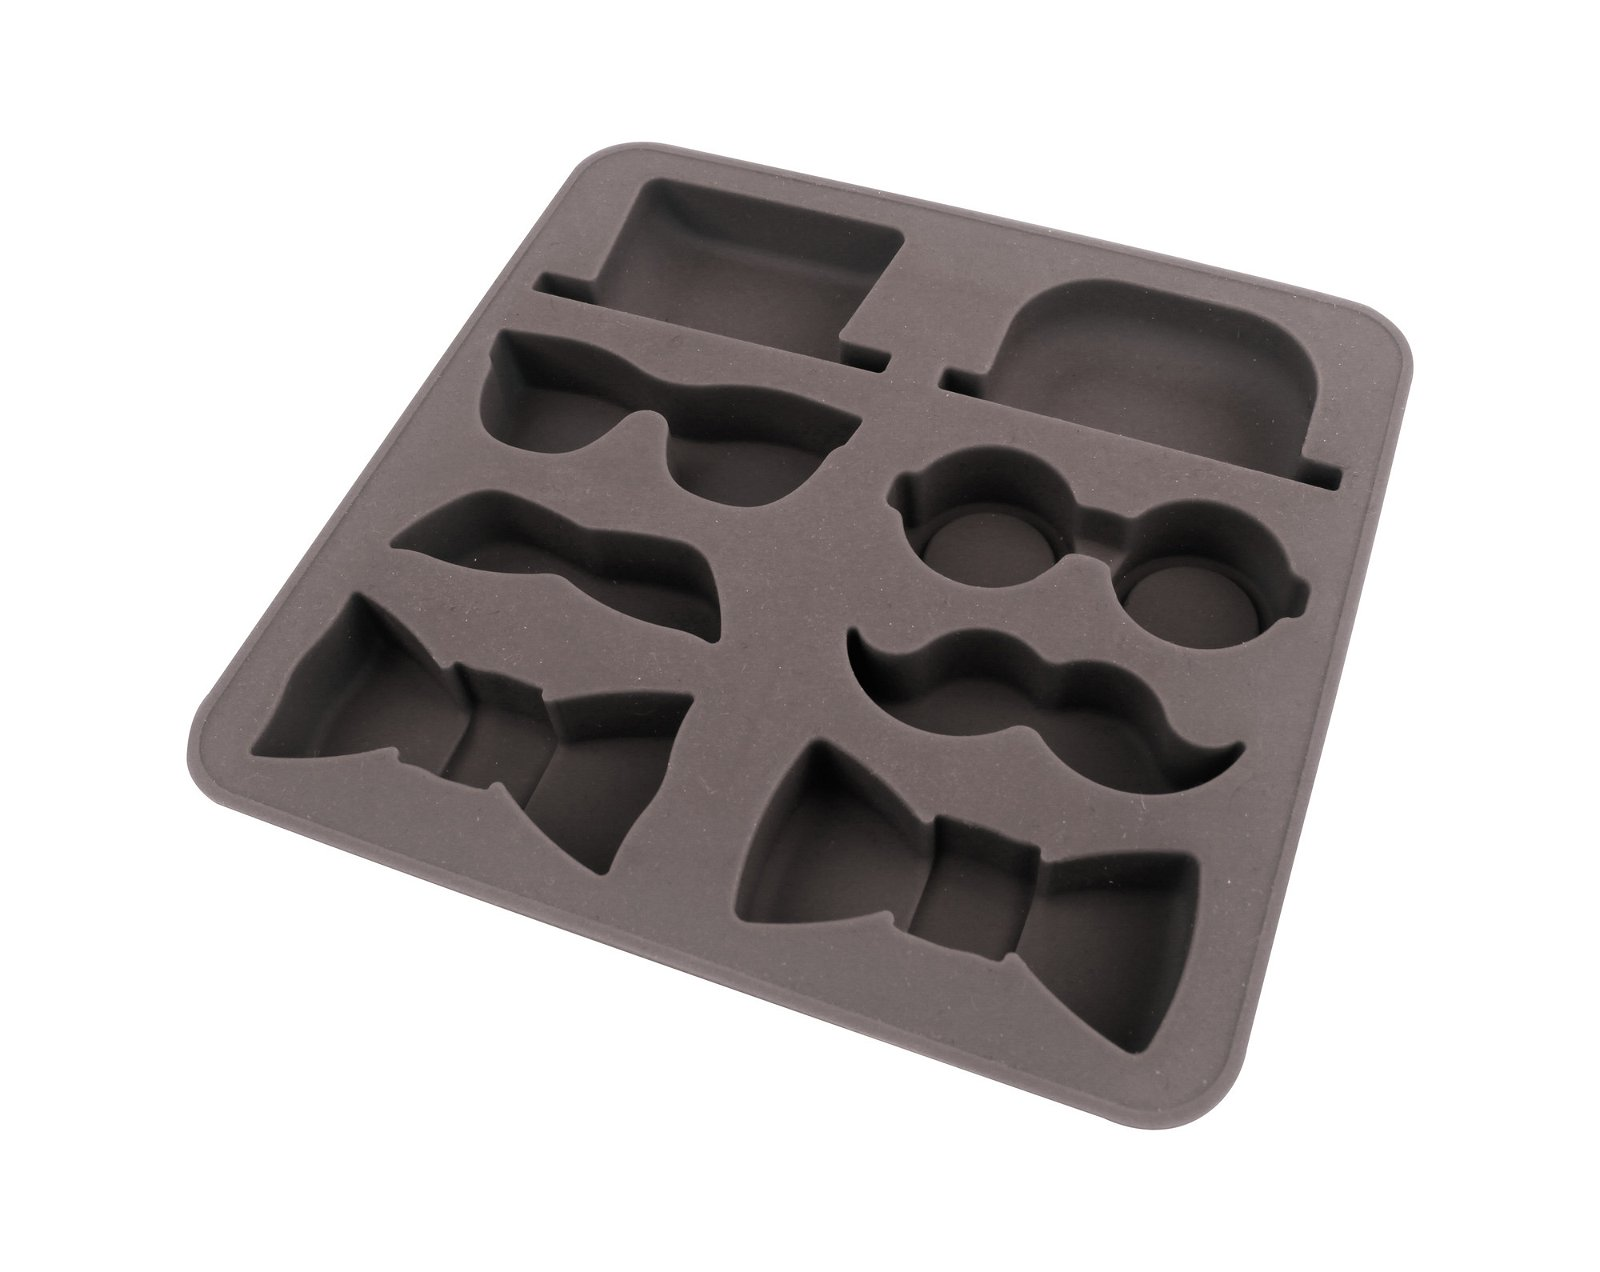 GENTLEMAN'S ICE CUBE TRAY